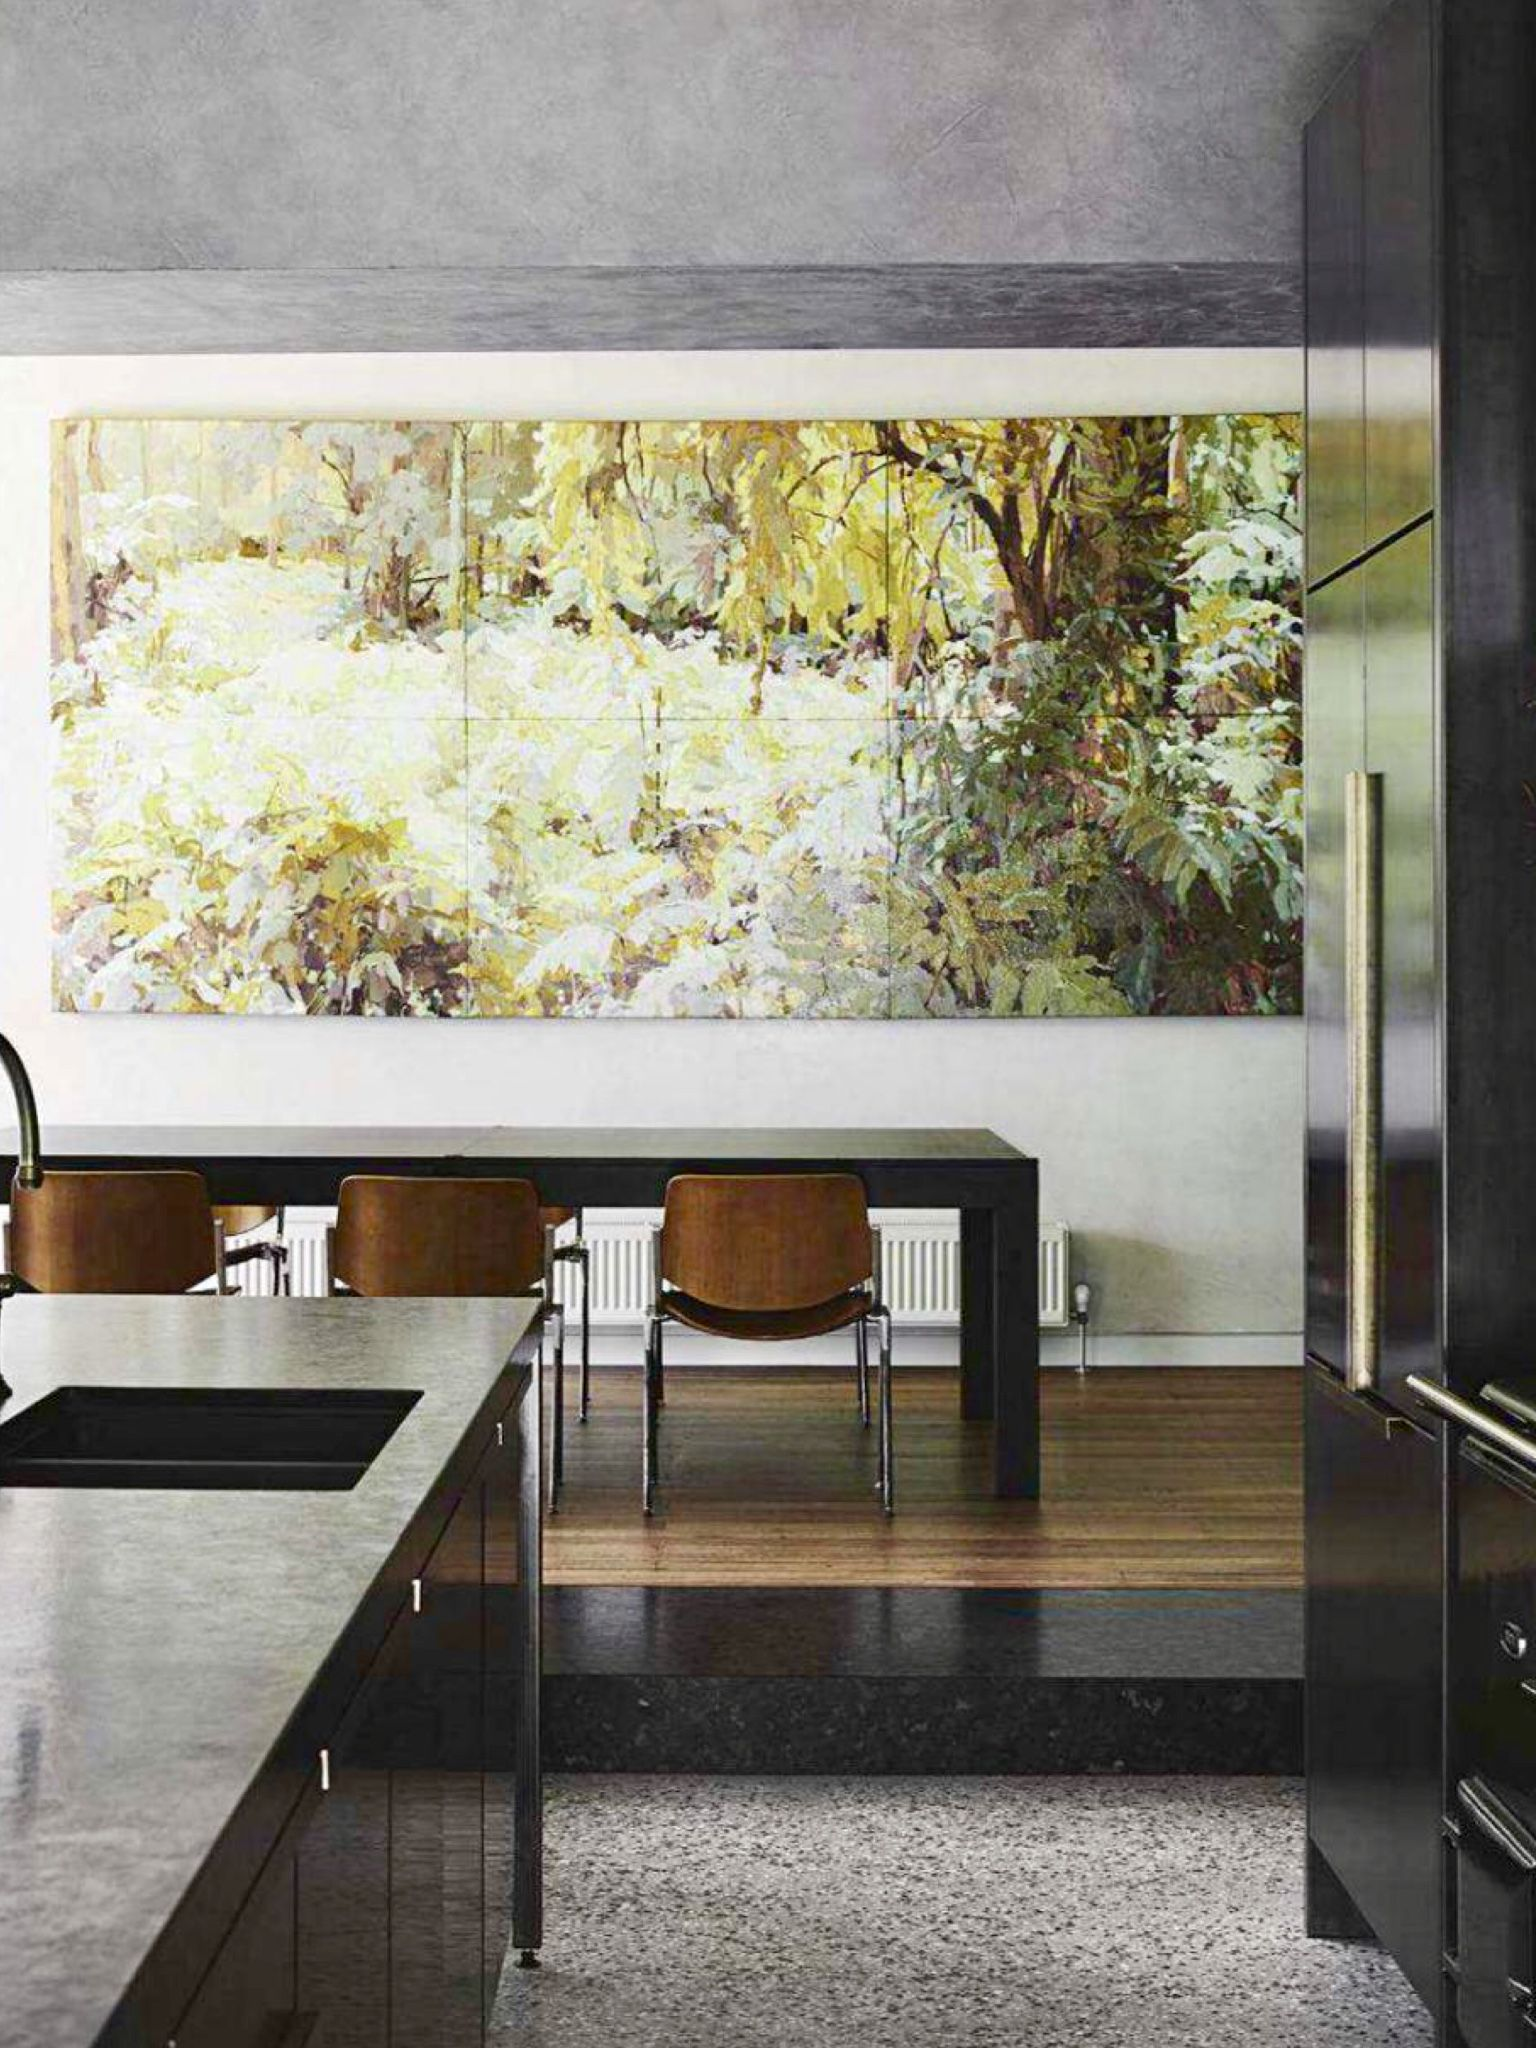 Oversized wall mural adds interest to somber kitchen Dining Room